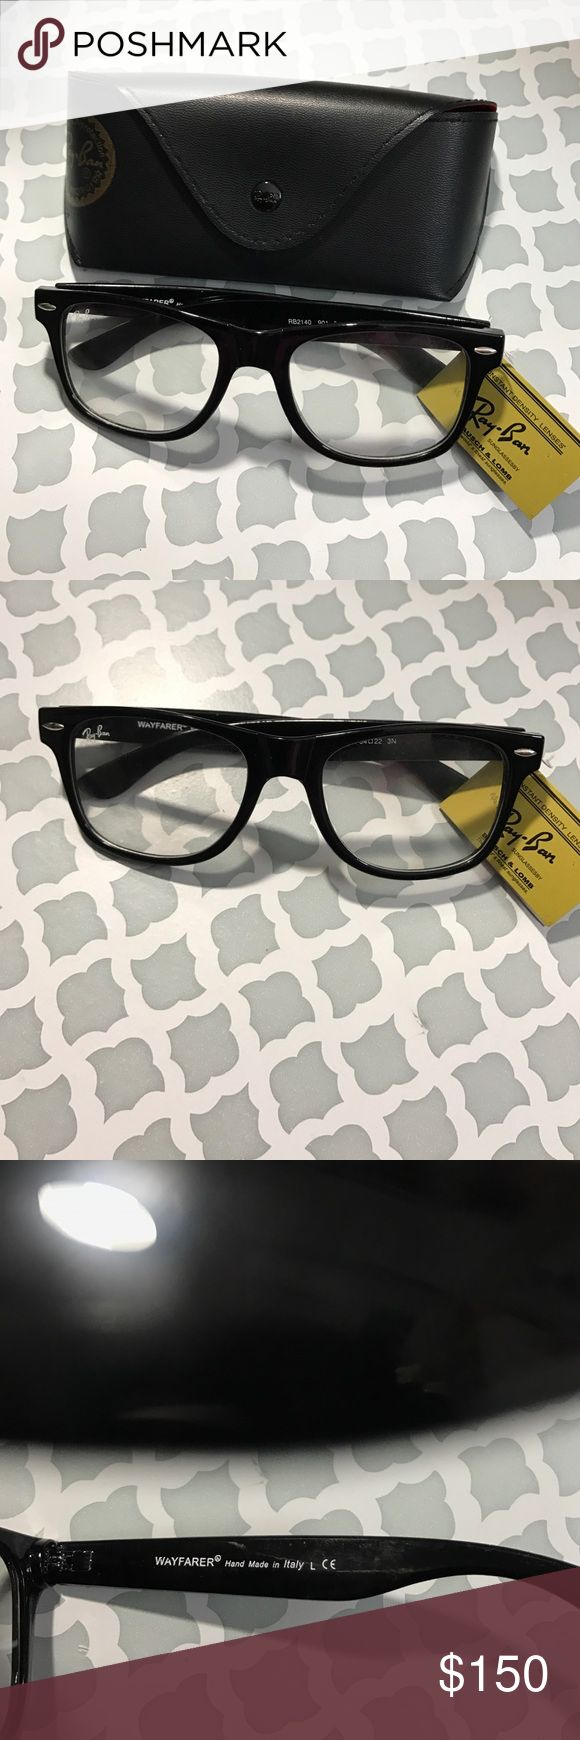 NWT Ray-Ban Wayfarer Eyeglasses I'm selling this Ray-Ban Wayfarer Eyeglasses. Brand new with tag. Made in Italy. You can use this for prescription lenses. I'm selling this coz I have a new glasses covered by my ins. Other